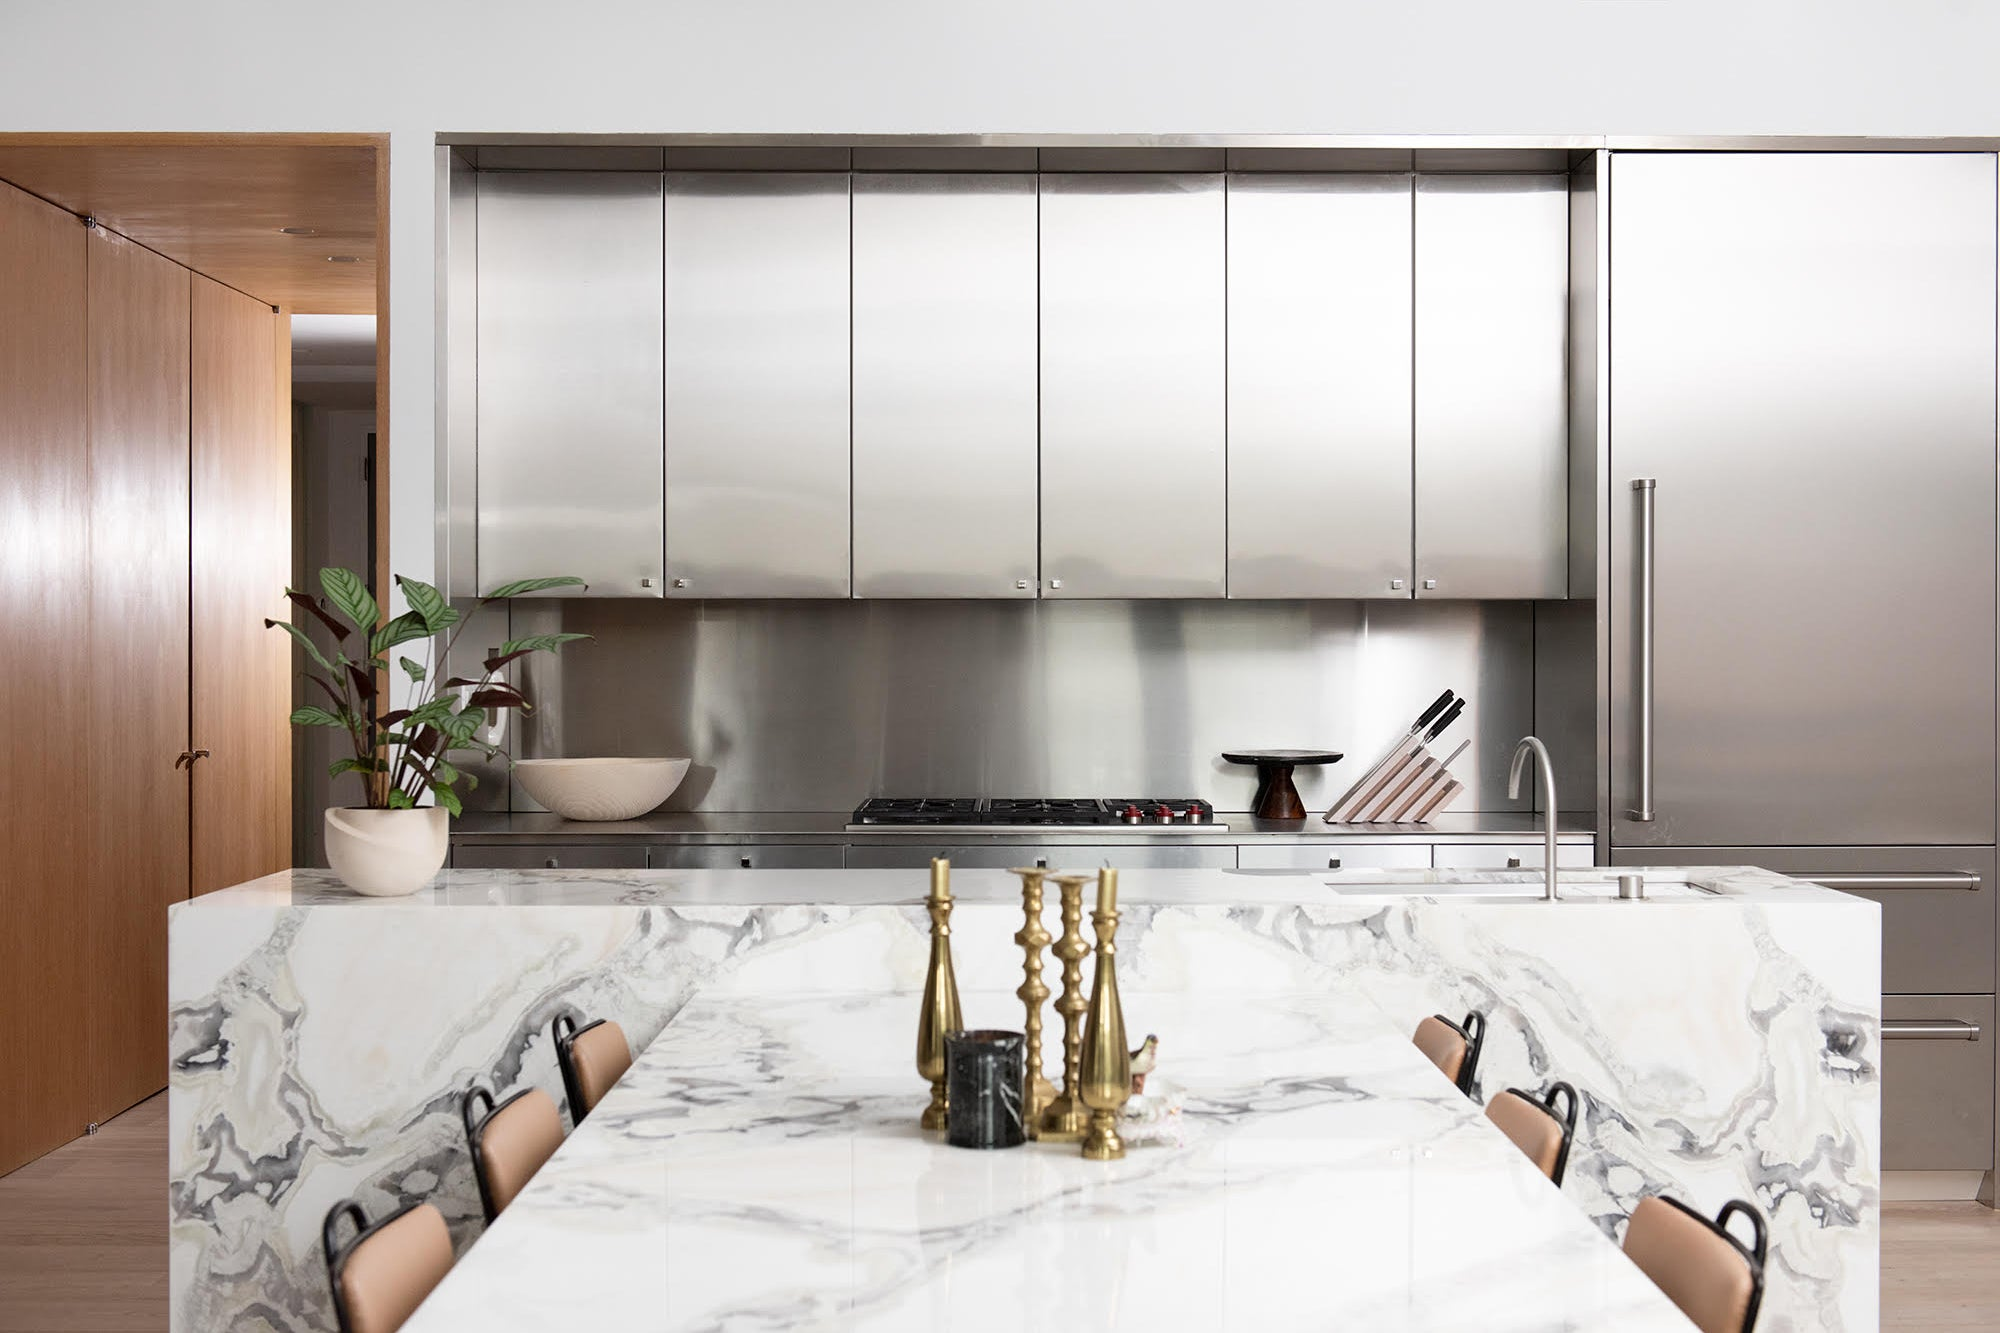 11 Kitchen Cabinet Designs Ideas You Ll Want To Save Before Renovating